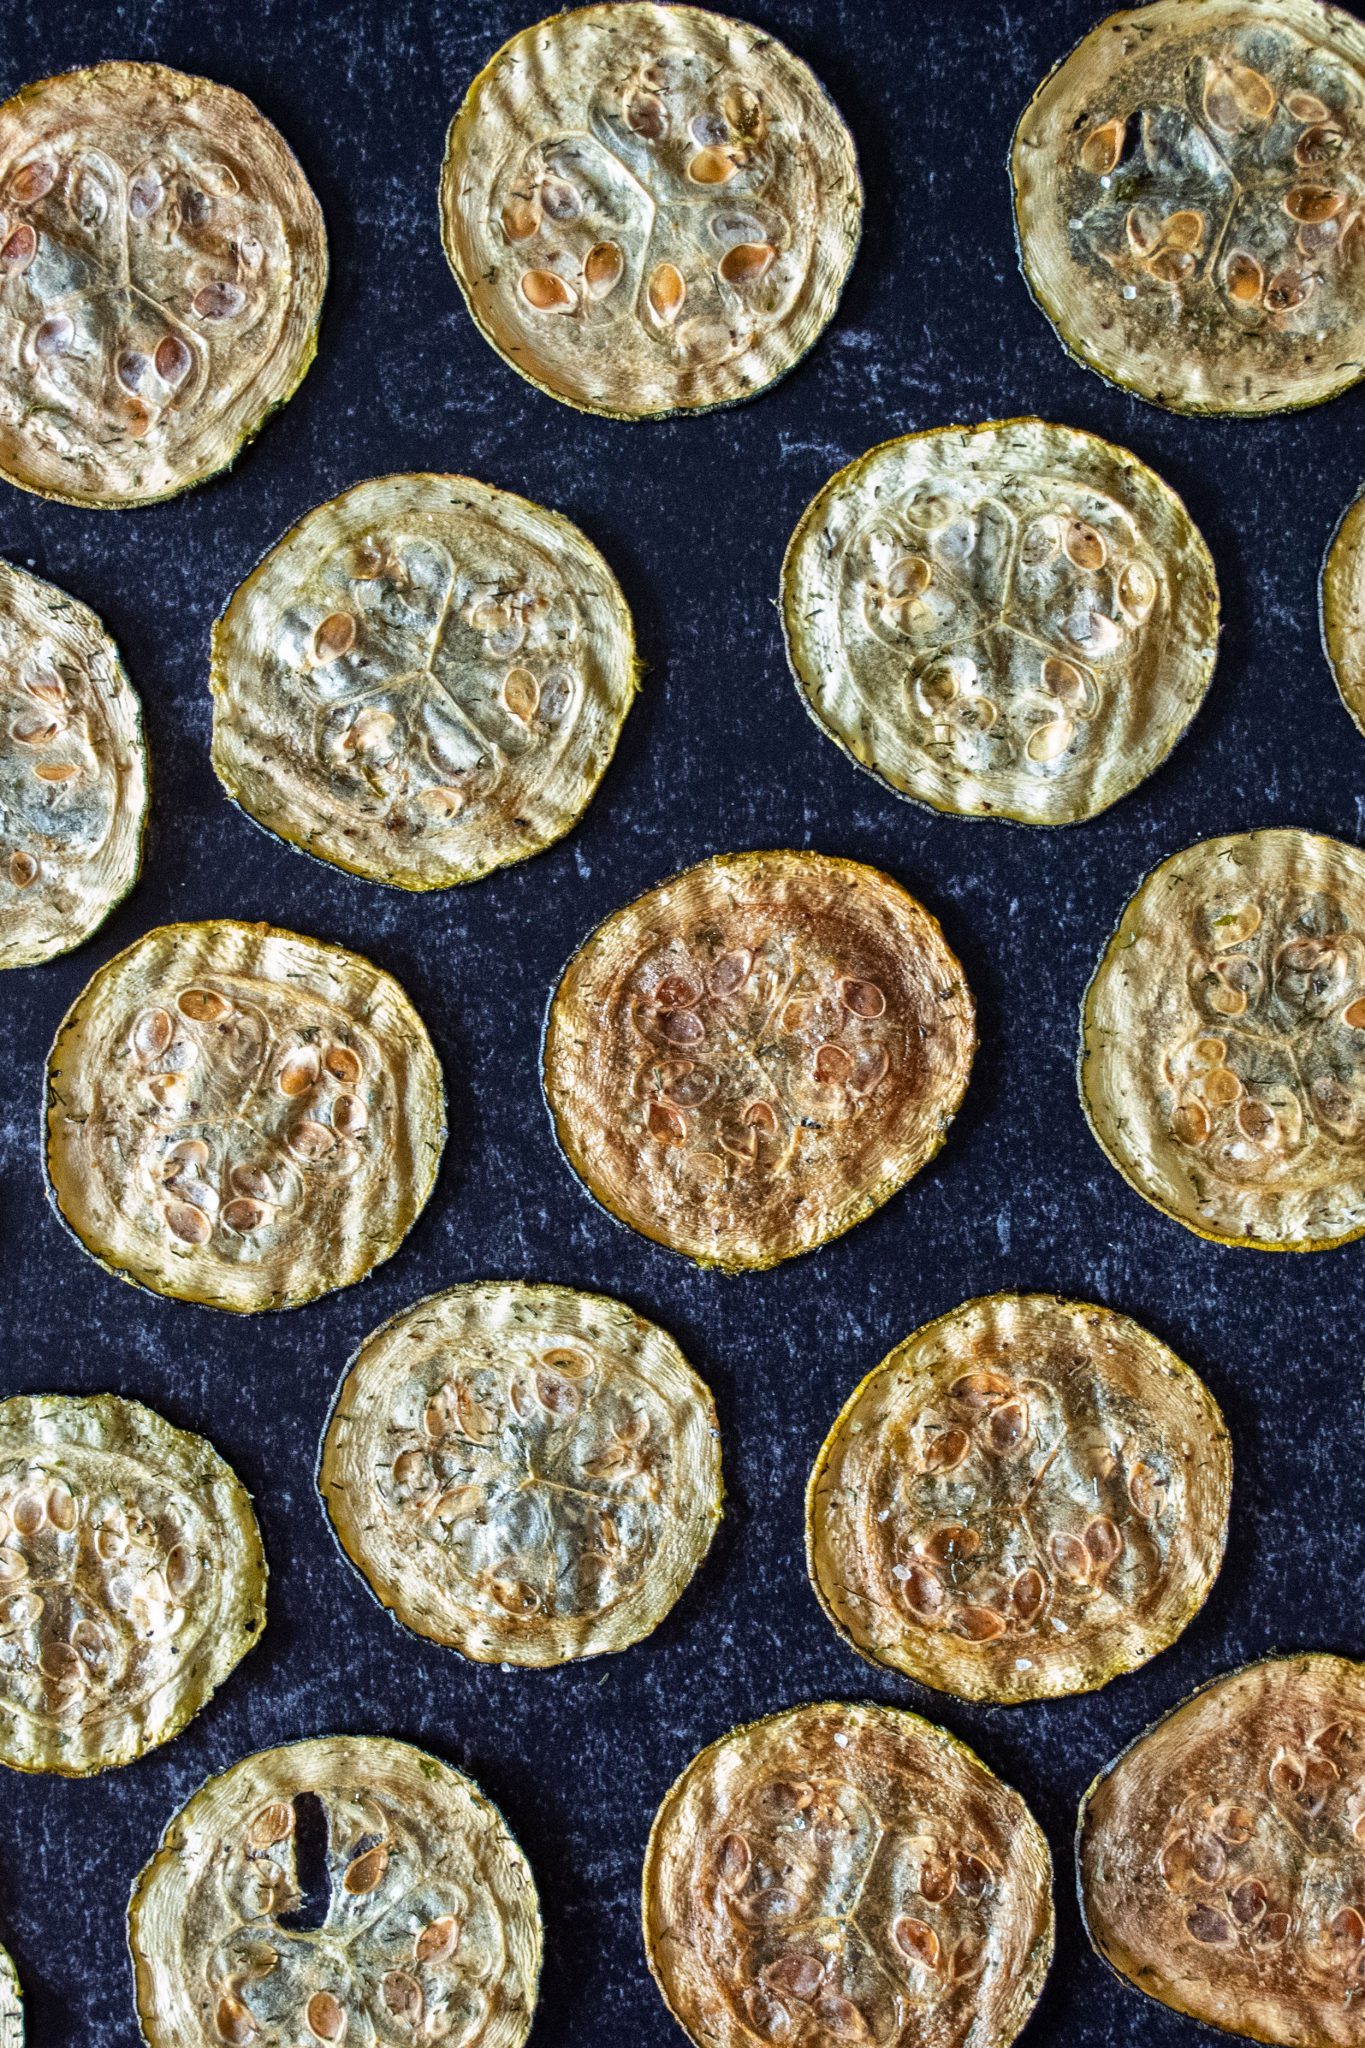 Overhead shot of zucchini chips arranged on a dark background, in a single layer, equidistant apart.